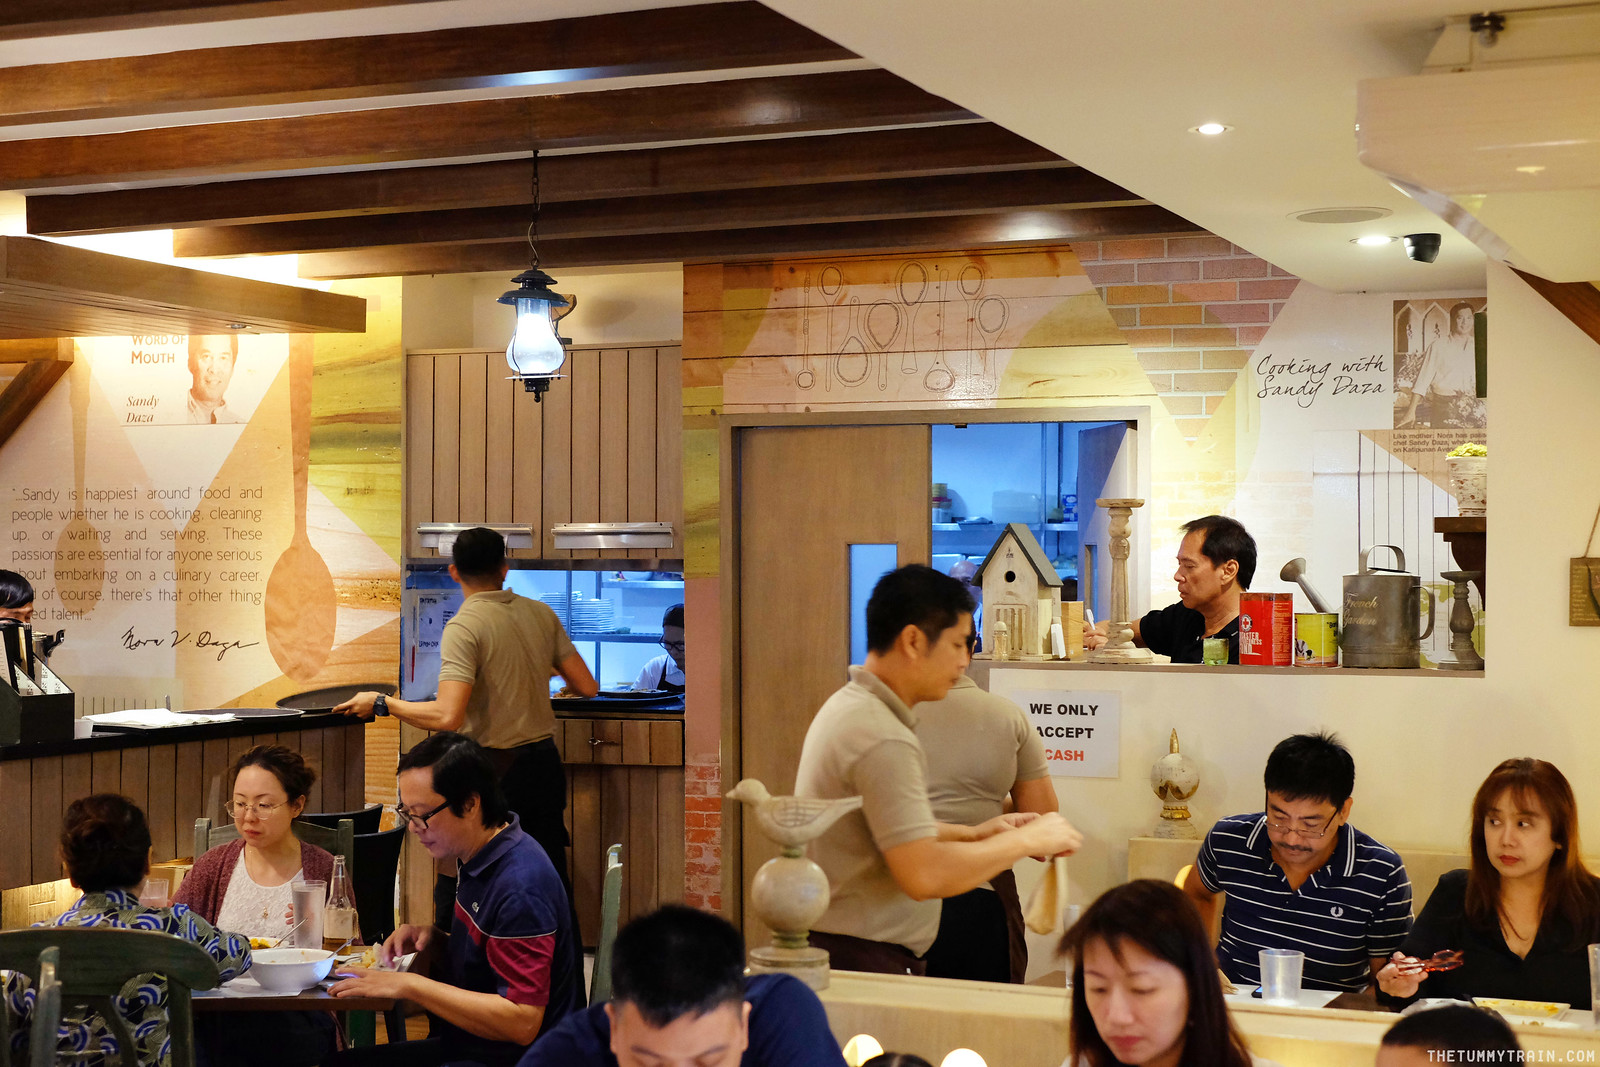 33336650442 a59b90f4c8 h - Have an affordable home-cooked Pinoy meal at Wooden Spoon